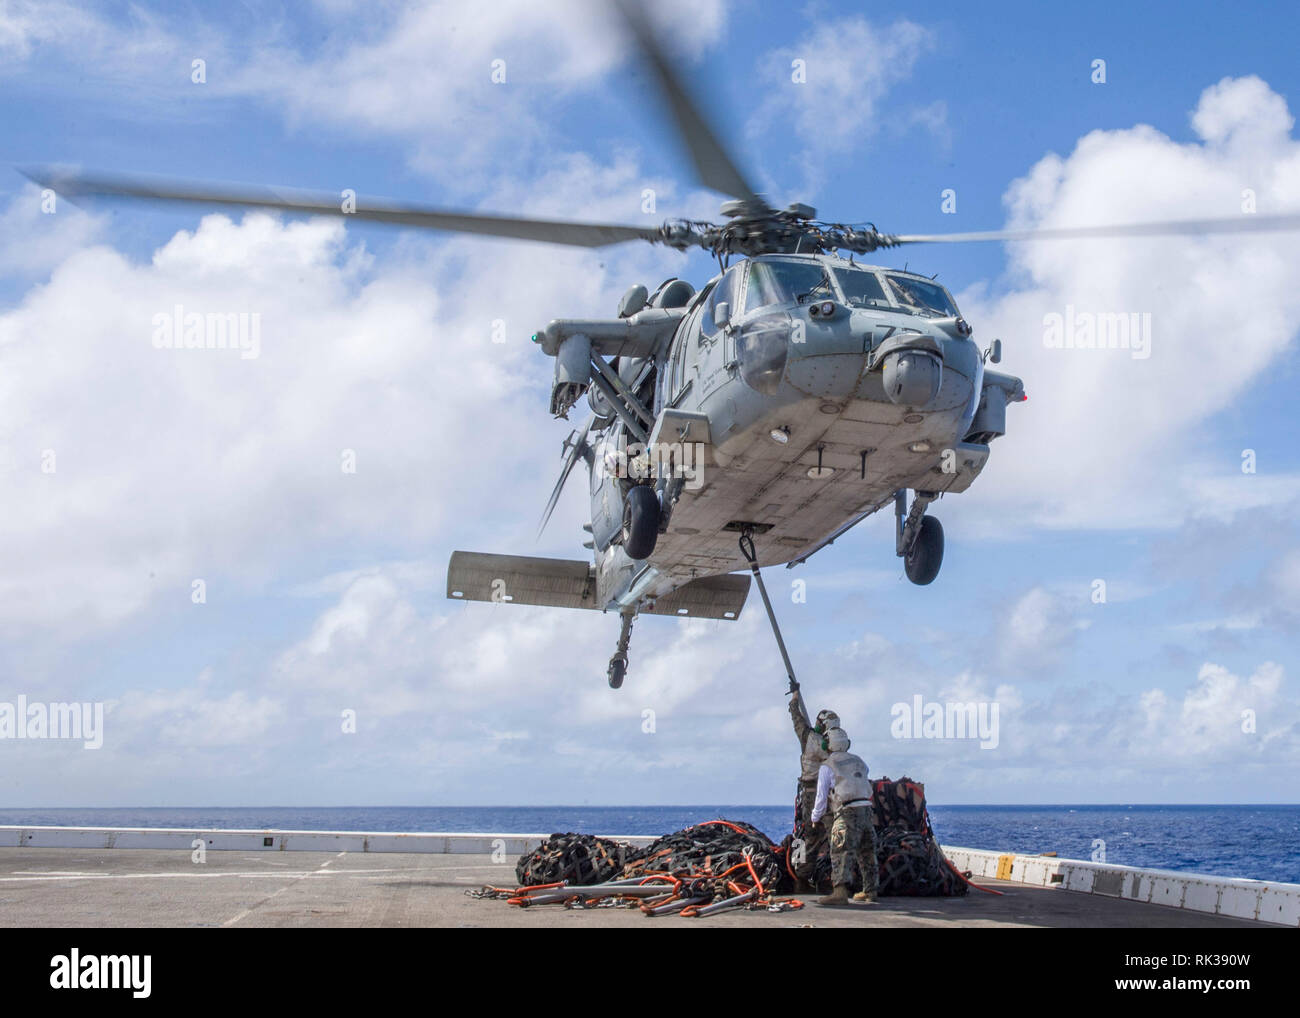 """190207-N-PH222-1433 PACIFIC OCEAN (Feb. 7, 2019) A MH-60S Sea Hawk helicopter, attached to the """"Blackjacks"""" of Helicopter Sea Combat Squadron (HSC) 21, prepares to transport cargo from the flight deck aboard the San Antonio-class amphibious transport dock ship USS Anchorage (LPD 23) during a vertical replenishment. Anchorage is on a deployment of the Essex Amphibious Ready Group (ARG) and 13th Marine Expeditionary Unit (MEU). The Essex ARG/13th MEU is a capable and lethal Navy-Marine Corps team deployed to the 7th fleet area of operations to support regional stability, reassure partners and al - Stock Image"""